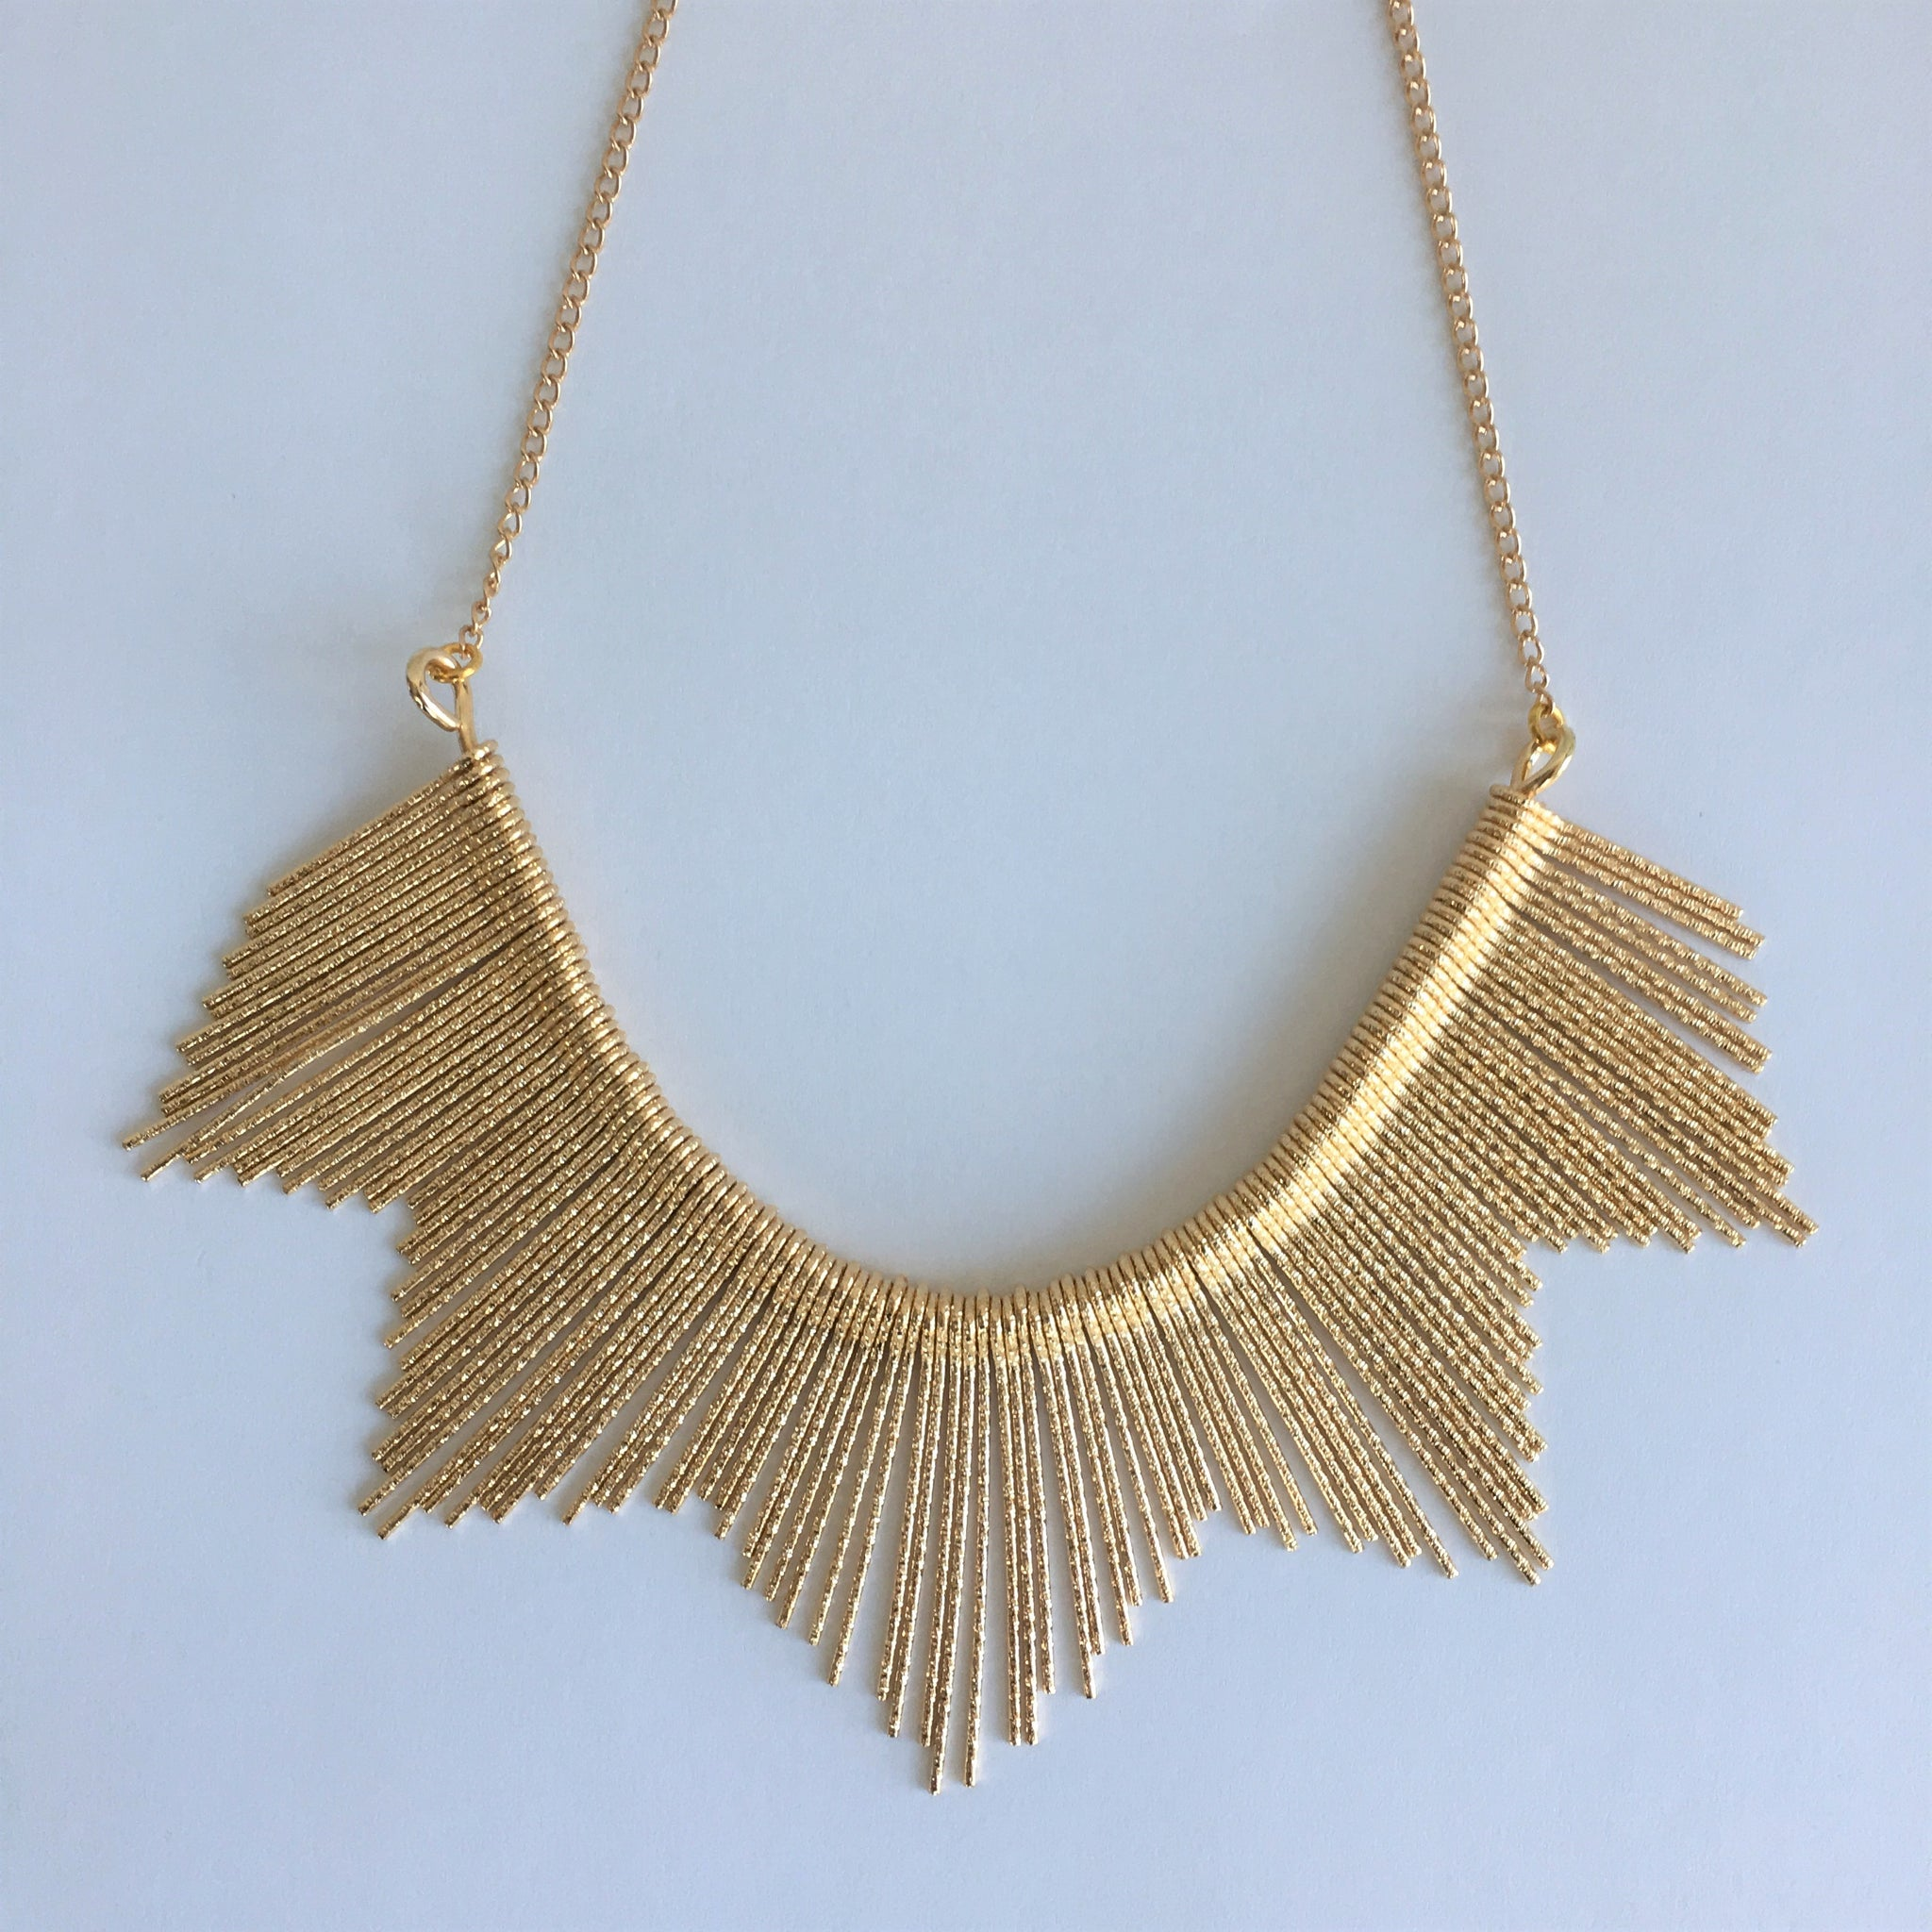 AMIE Necklace